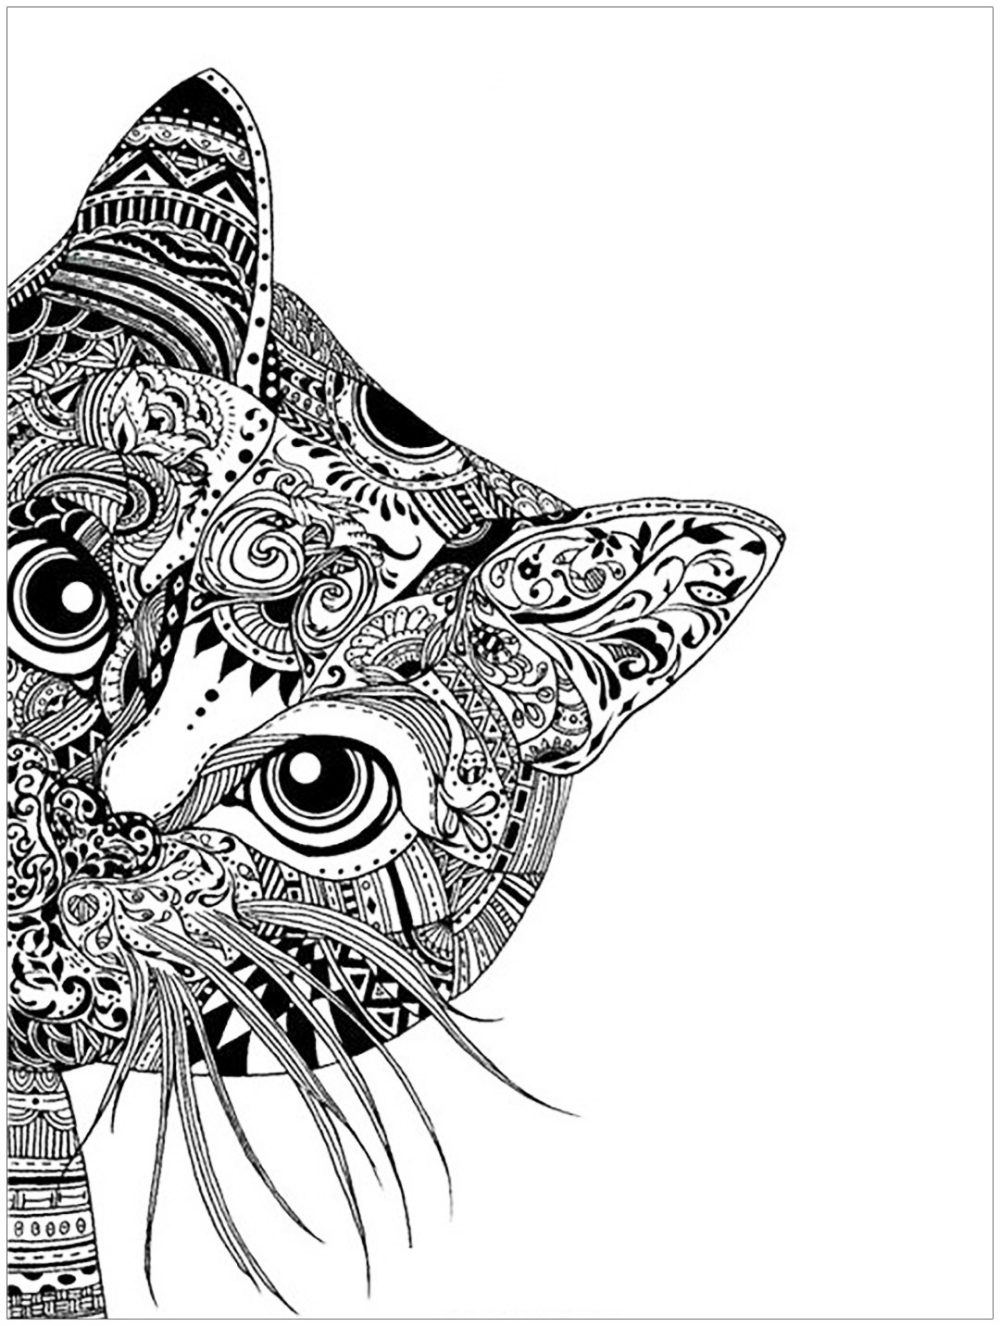 Coloring Rocks Cat Coloring Page Animal Coloring Pages Mandala Coloring Pages [ 1326 x 1000 Pixel ]